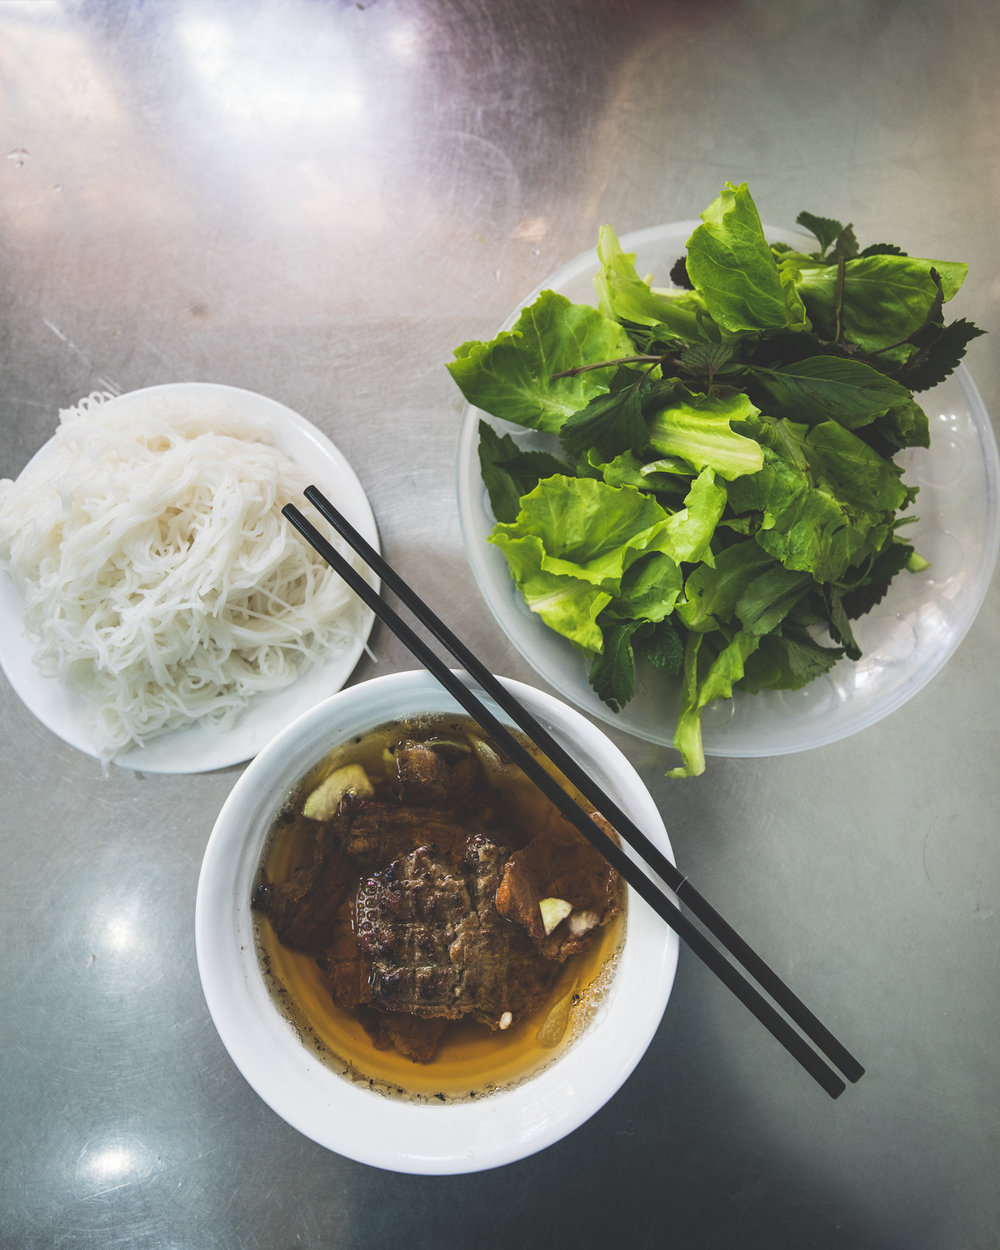 Bun Cha - a delicious dish that blends sweet and sour broth with the smokey bbq pork patties.